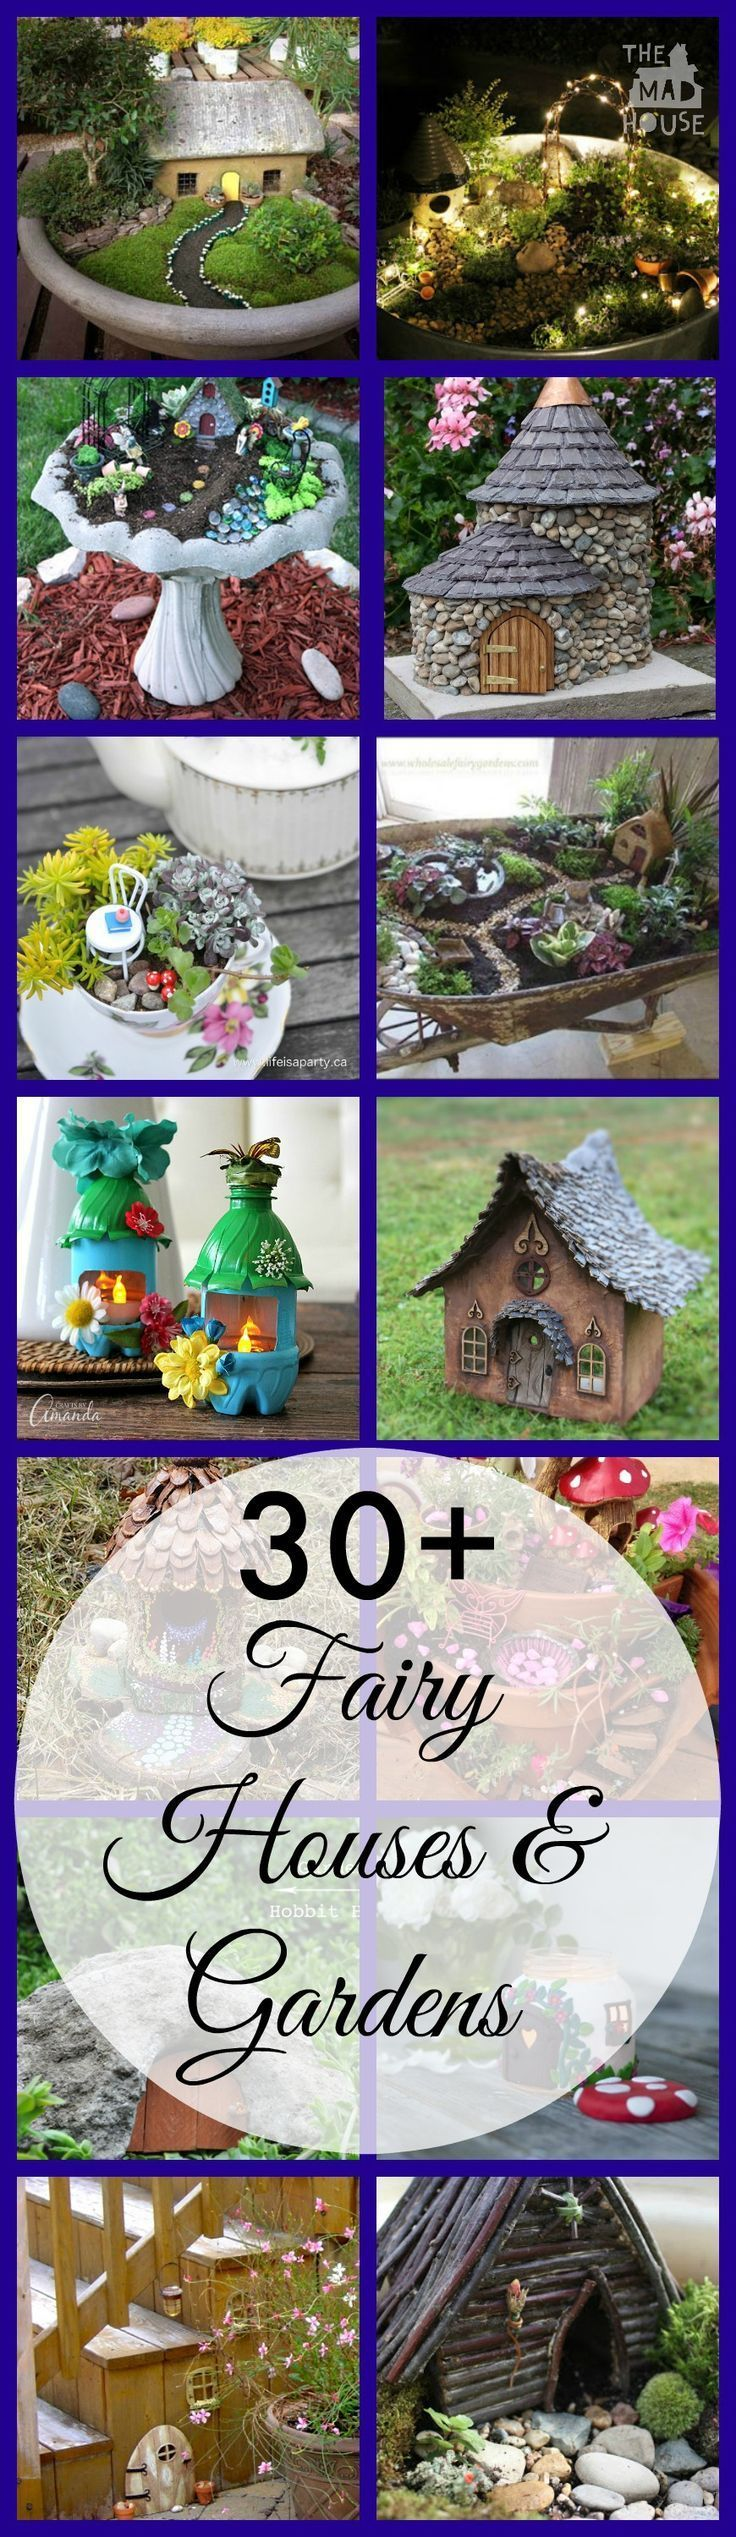 Gnome Garden: 525 Best Images About Fairy Gardens On Pinterest